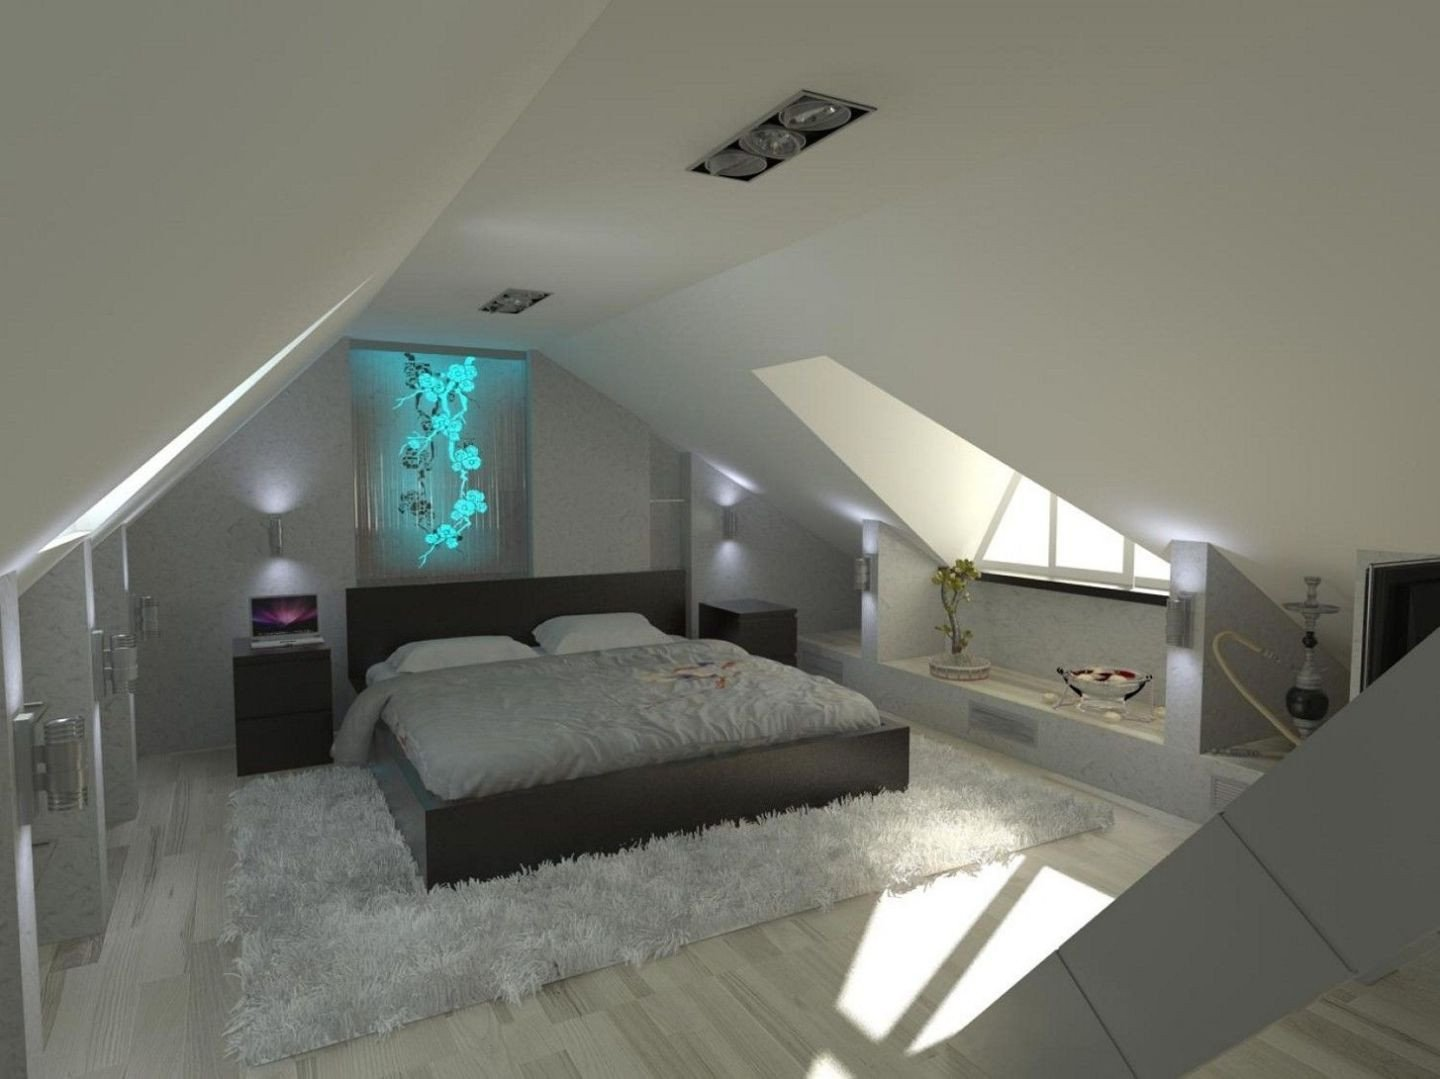 Bedroom Storage Ideas for Small Rooms Best Of Small attic Bedroom Storage Ideas